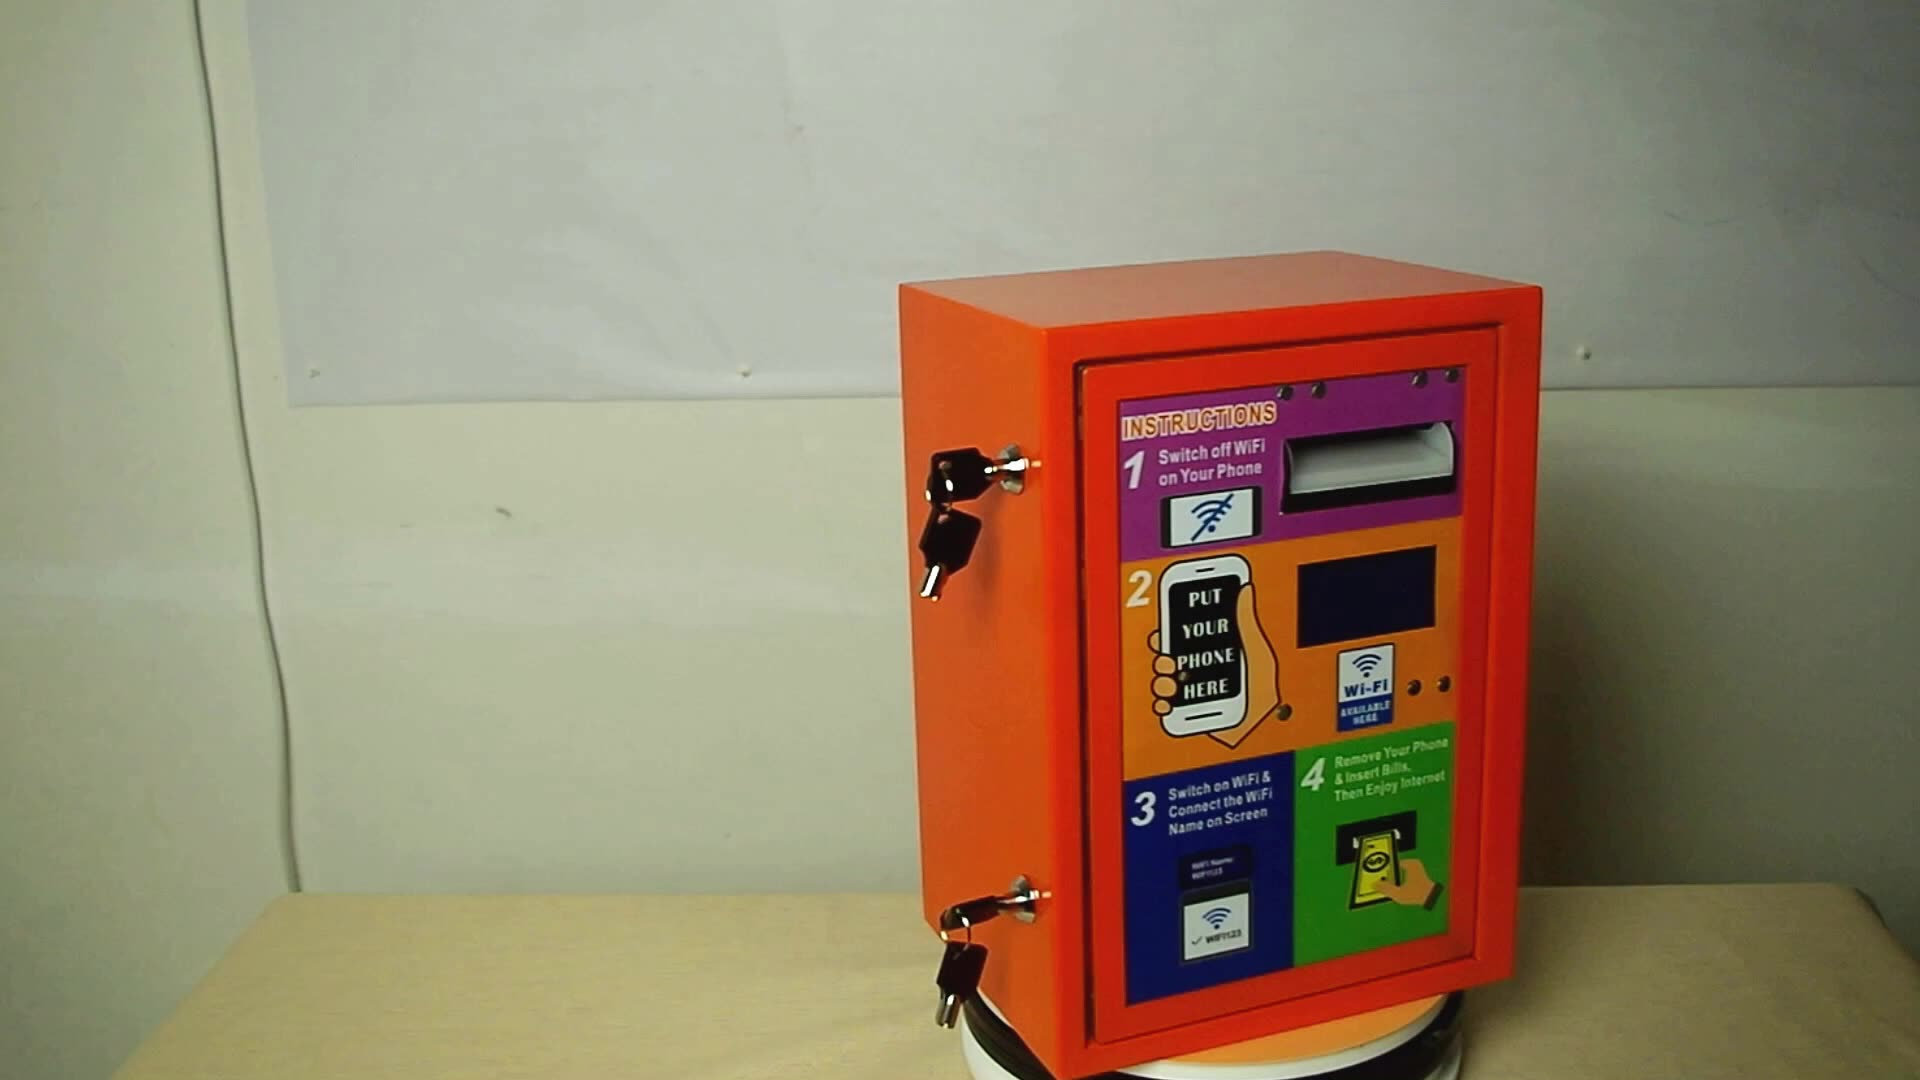 2020 Small Business Franchise Opportunities Outdoor Banknote-Operated 4G WiFi Wireless Network Vending Machine